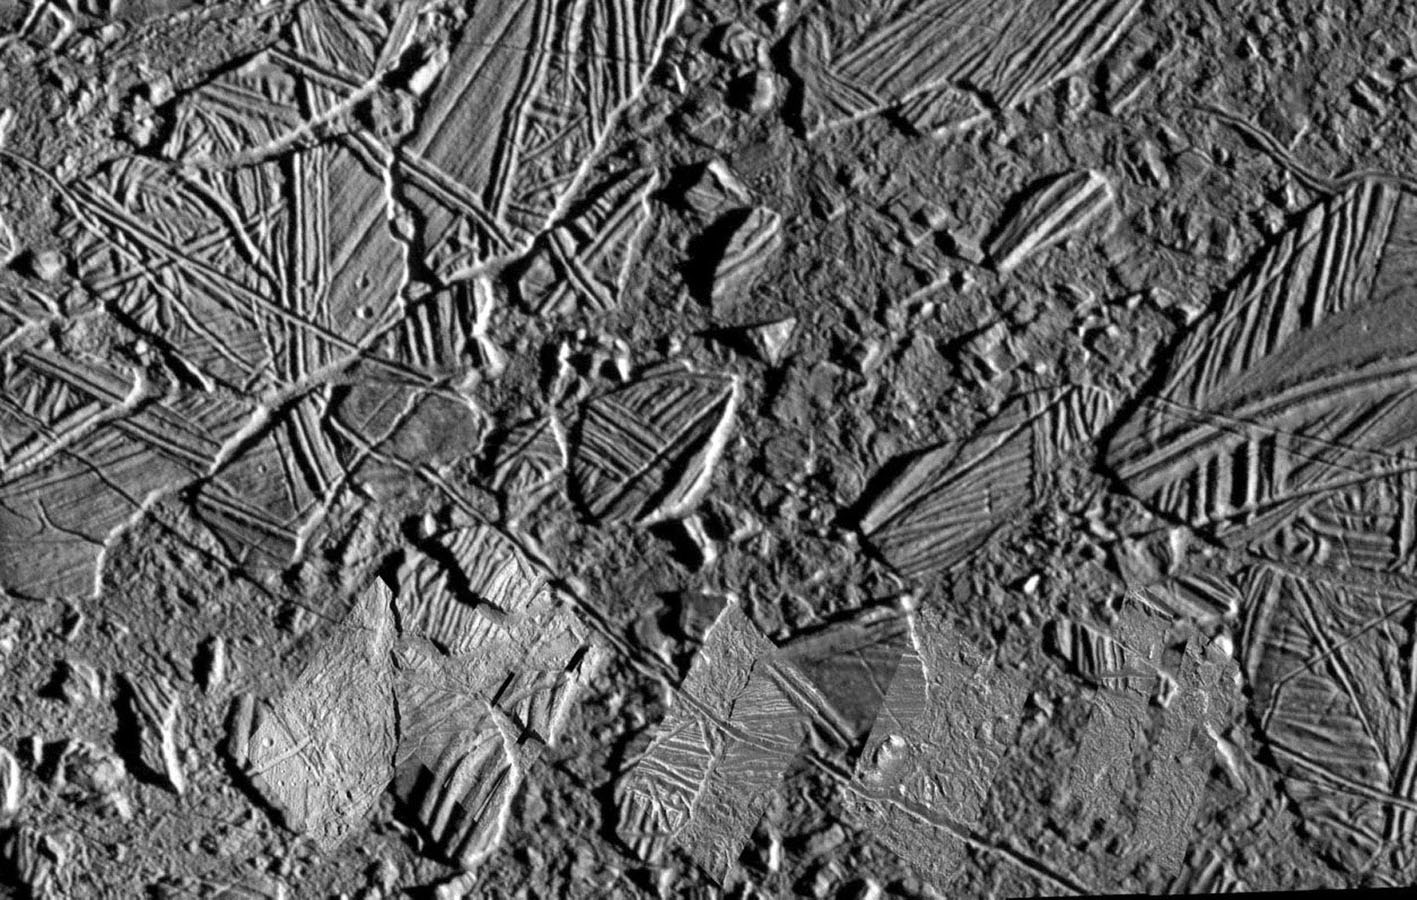 This mosaic of the Conamara Chaos region on Jupiter's moon, Europa, clearly indicates relatively recent resurfacing of Europa's surface. The background image in this picture was taken during NASA's Galileo spacecraft's sixth orbit of Jupiter.